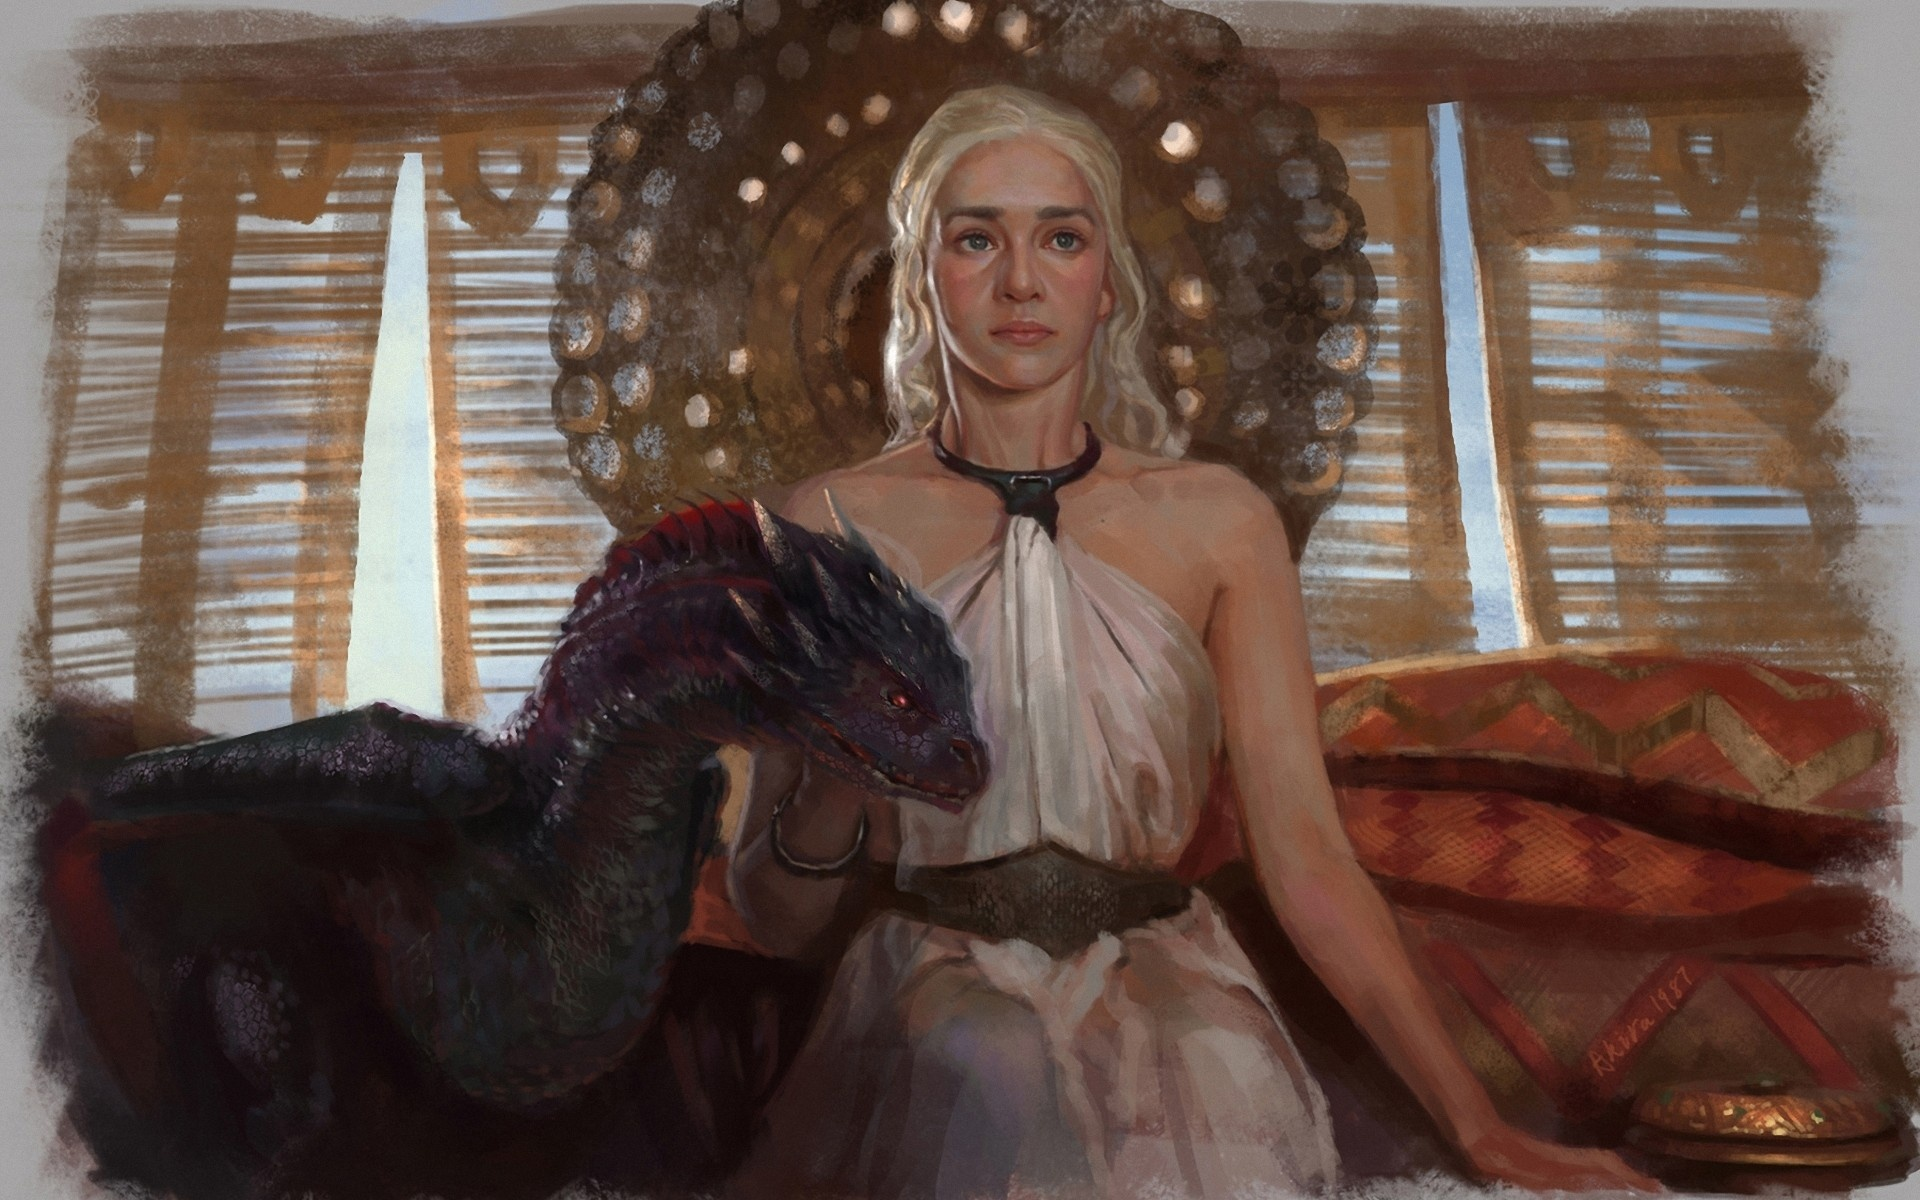 Daenerys-Targaryen-personnage-de-Game-of-Thrones-dessin